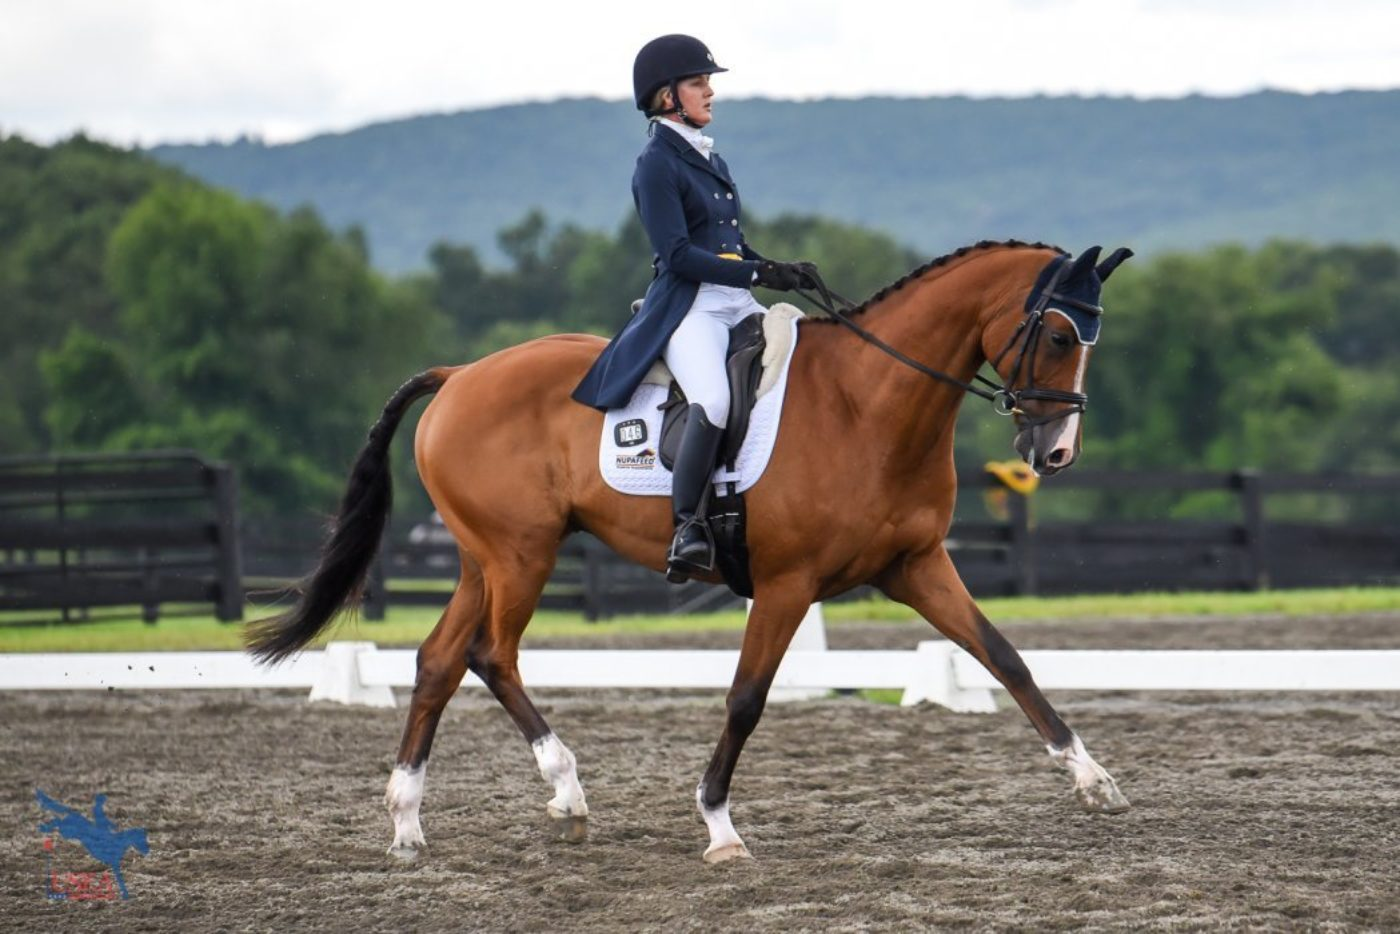 3rd - Allison Springer and Lord Willing - 25.0